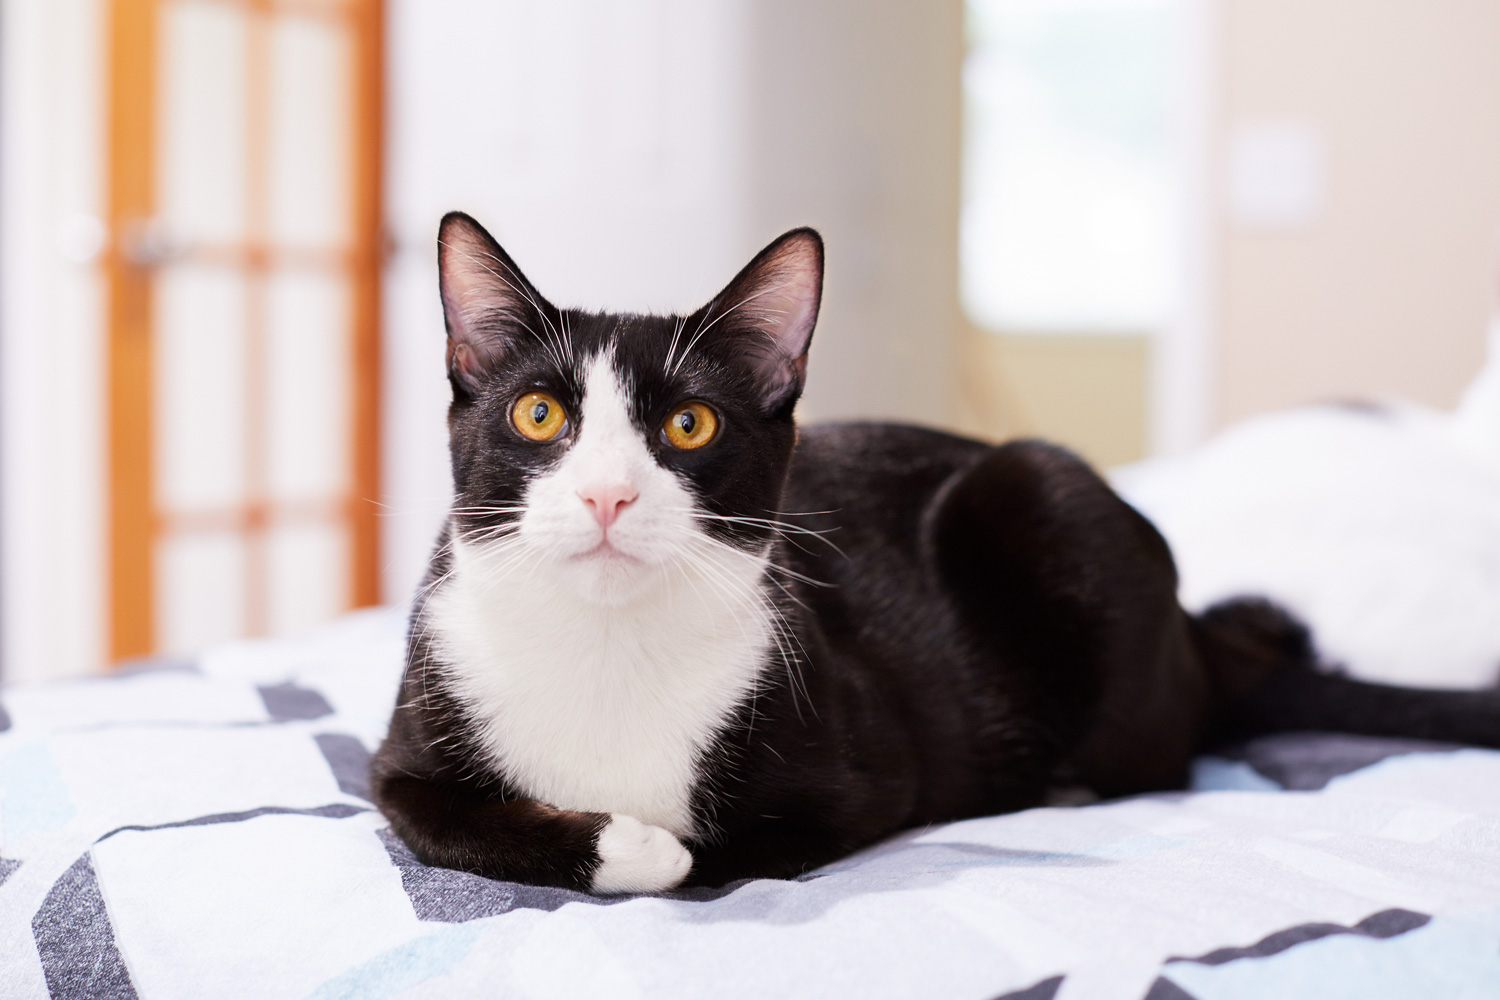 A black and white tuxedo cat lying on the bed of his owner